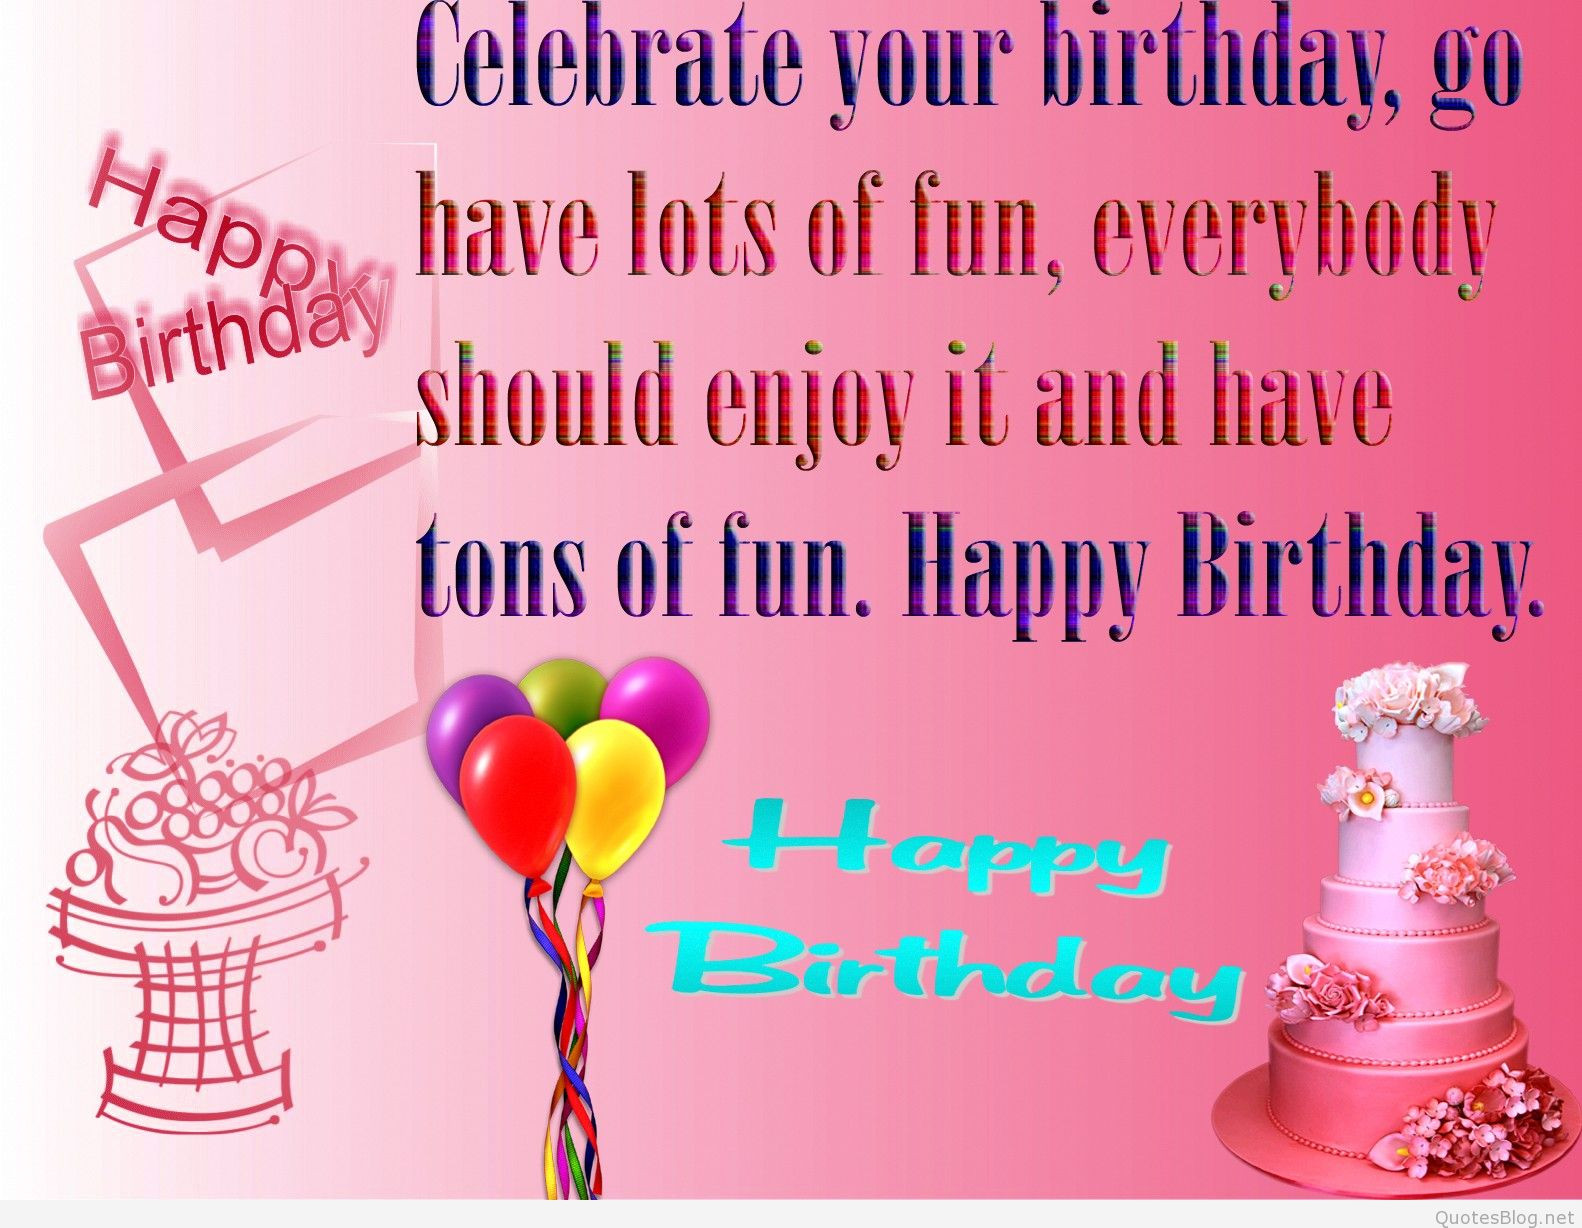 Best ideas about Quotation Birthday Wishes . Save or Pin birthday quotes images Now.